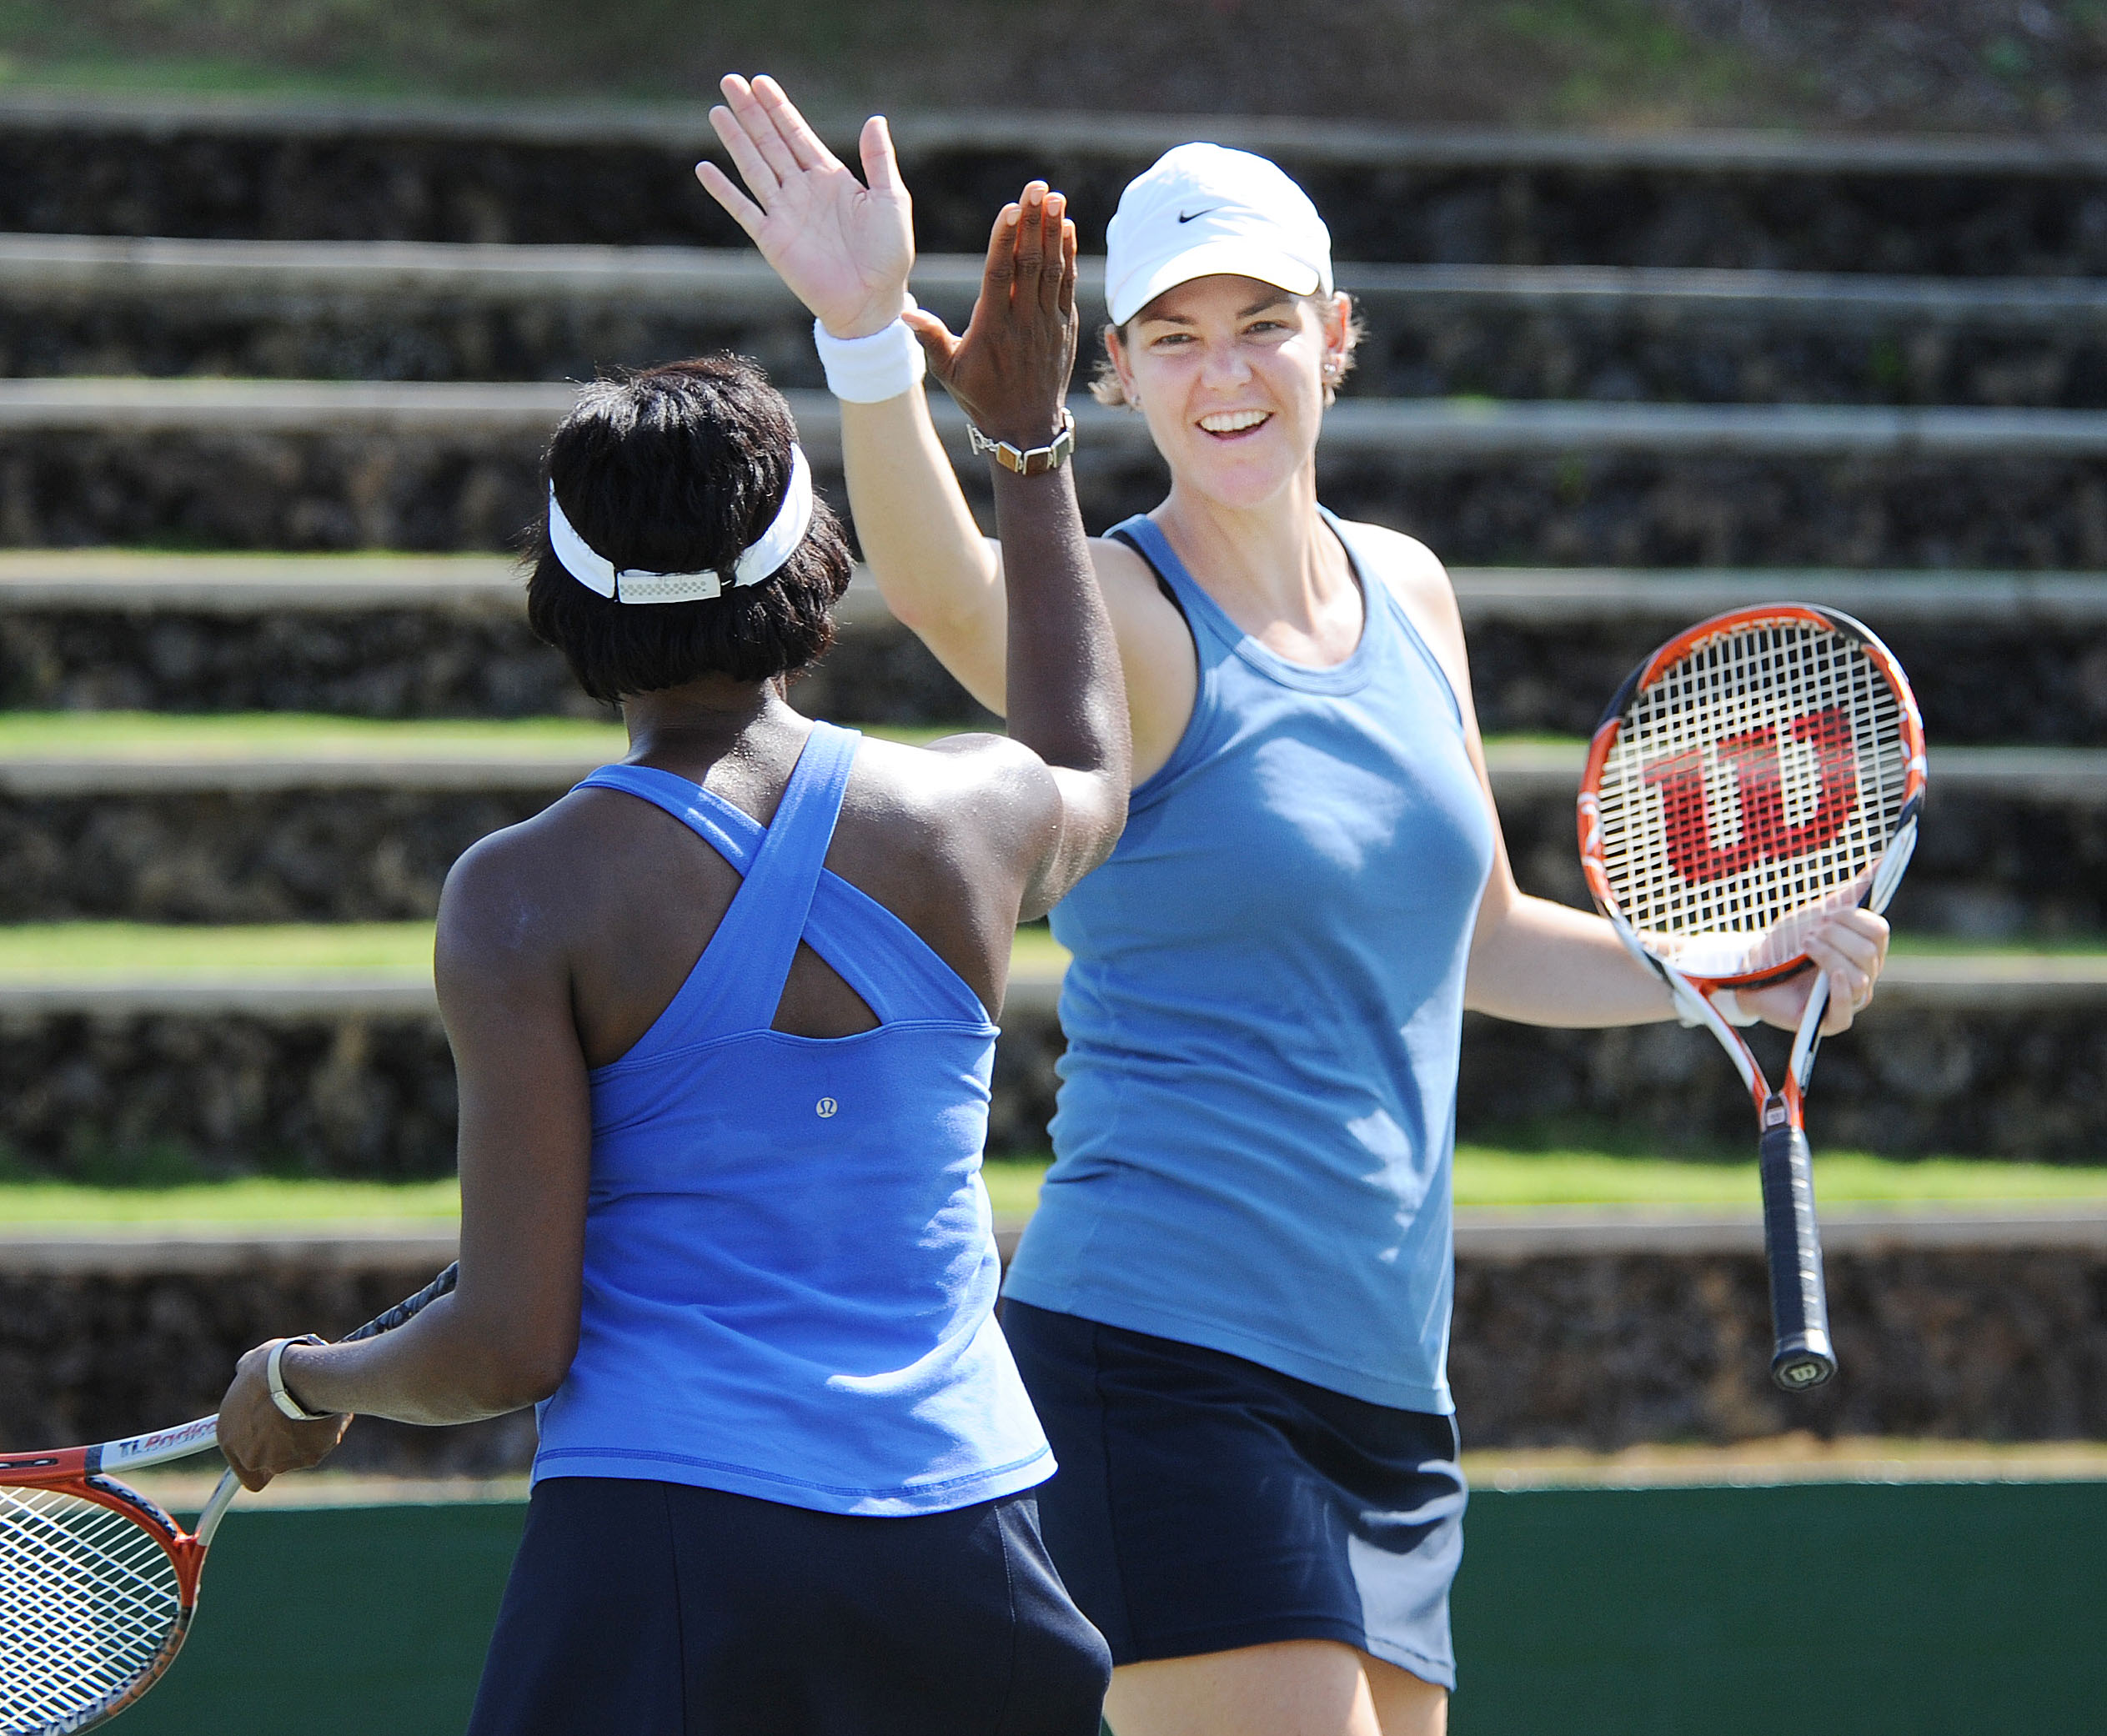 Lindsay Davenport, background, gives New Jersey's Lisa Webber, foreground, a high five after Lisa's put-away at the net at the Wailea Tennis Fantasy Camp 2010. (Photo: Courtesy of PR Web)